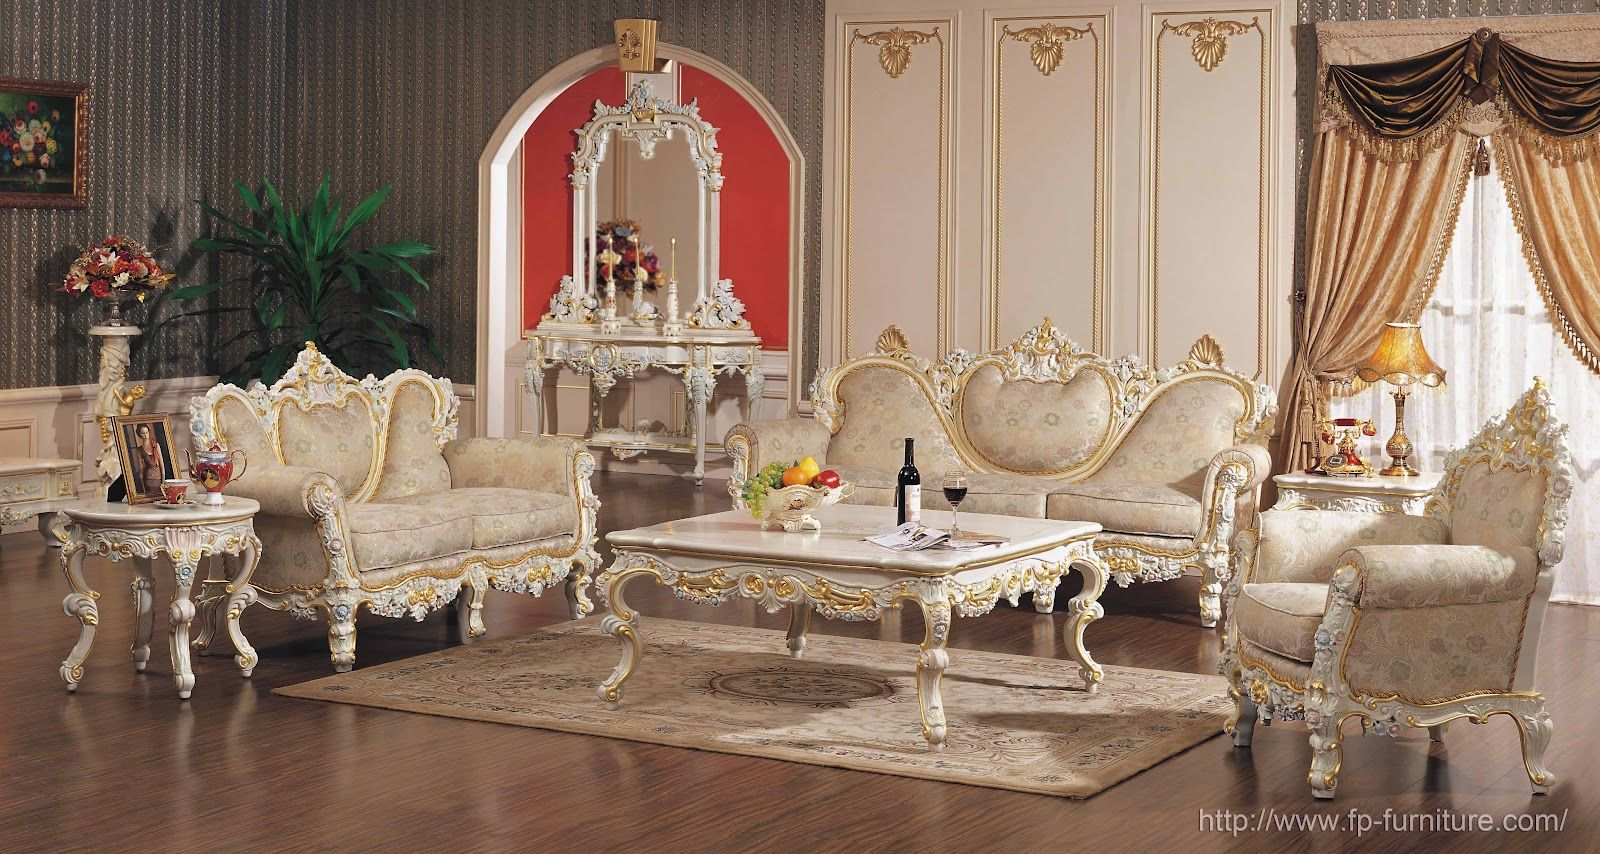 Different Styles Of Antique Chairs Italian Furniture Living Room Italian Living Room Country Style Living Room Furniture